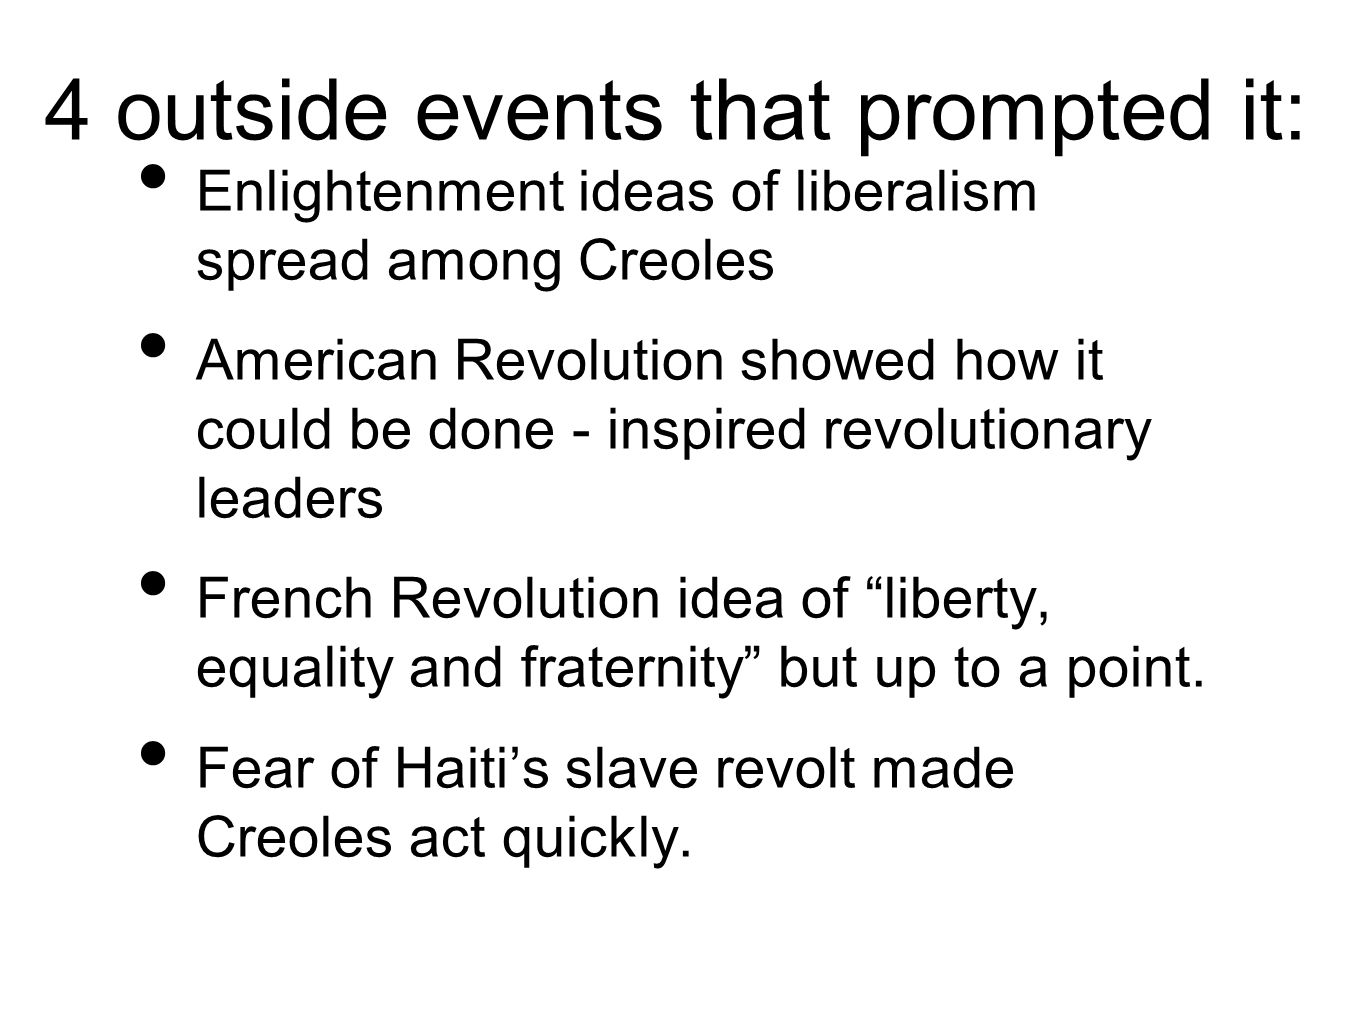 4 outside events that prompted it: Enlightenment ideas of liberalism spread among Creoles American Revolution showed how it could be done - inspired revolutionary leaders French Revolution idea of liberty, equality and fraternity but up to a point.